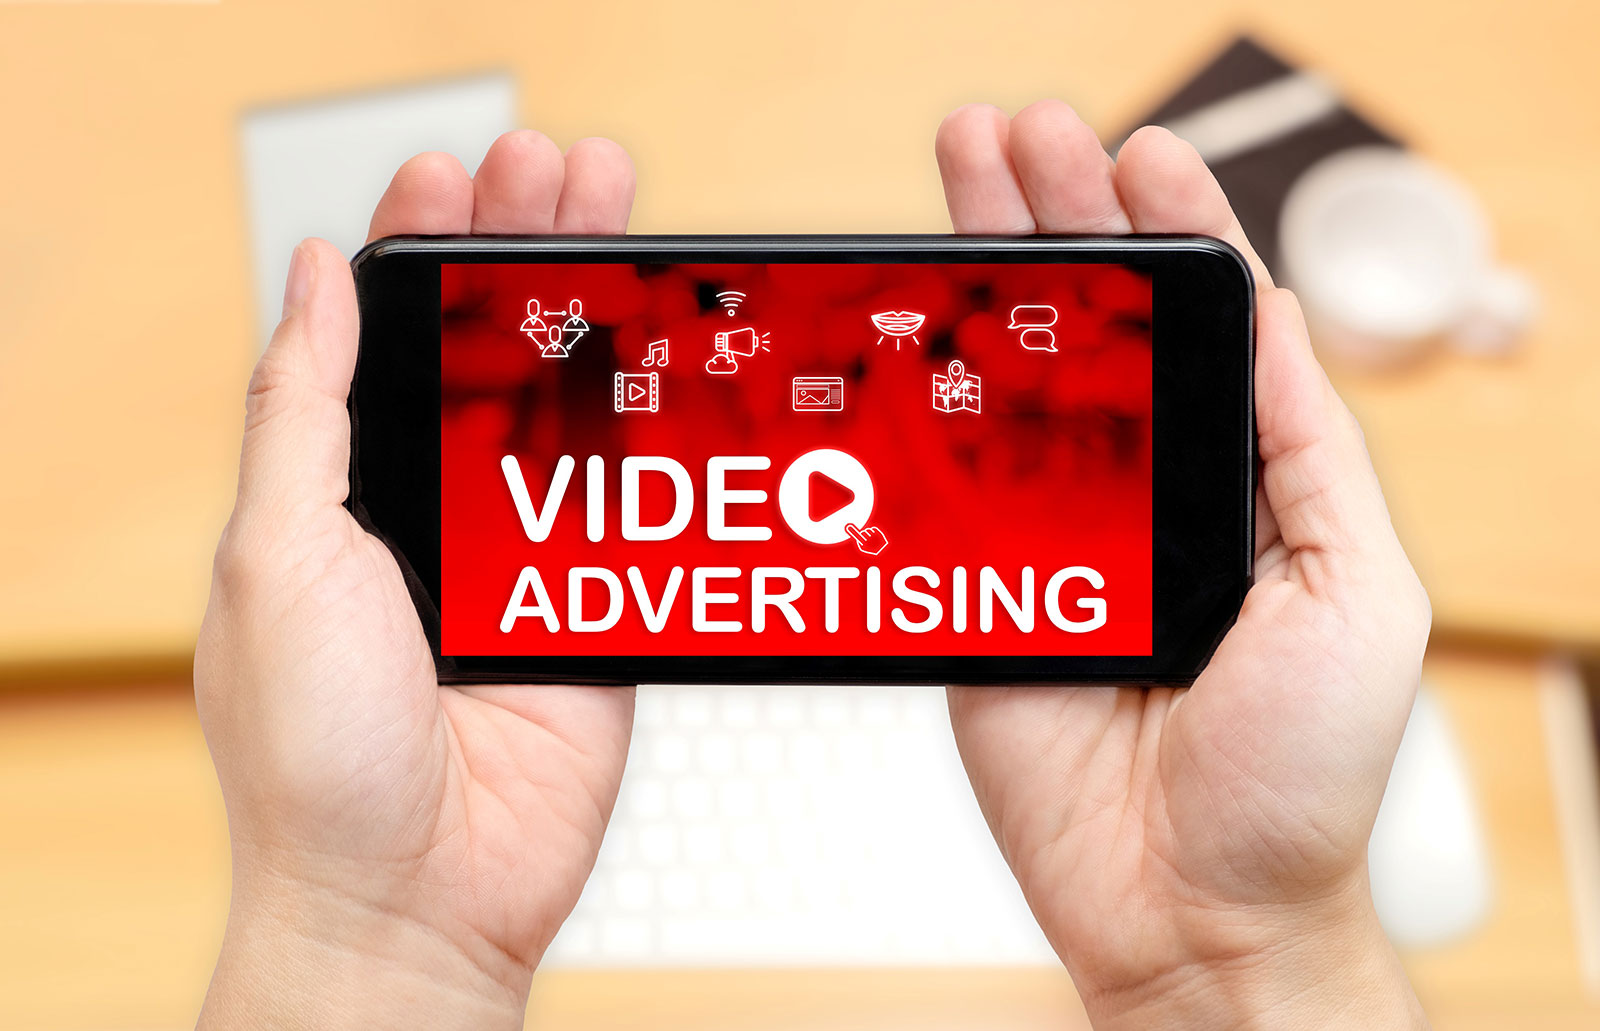 How Can Online Video Advertising Fit Within A Marketing Mix?